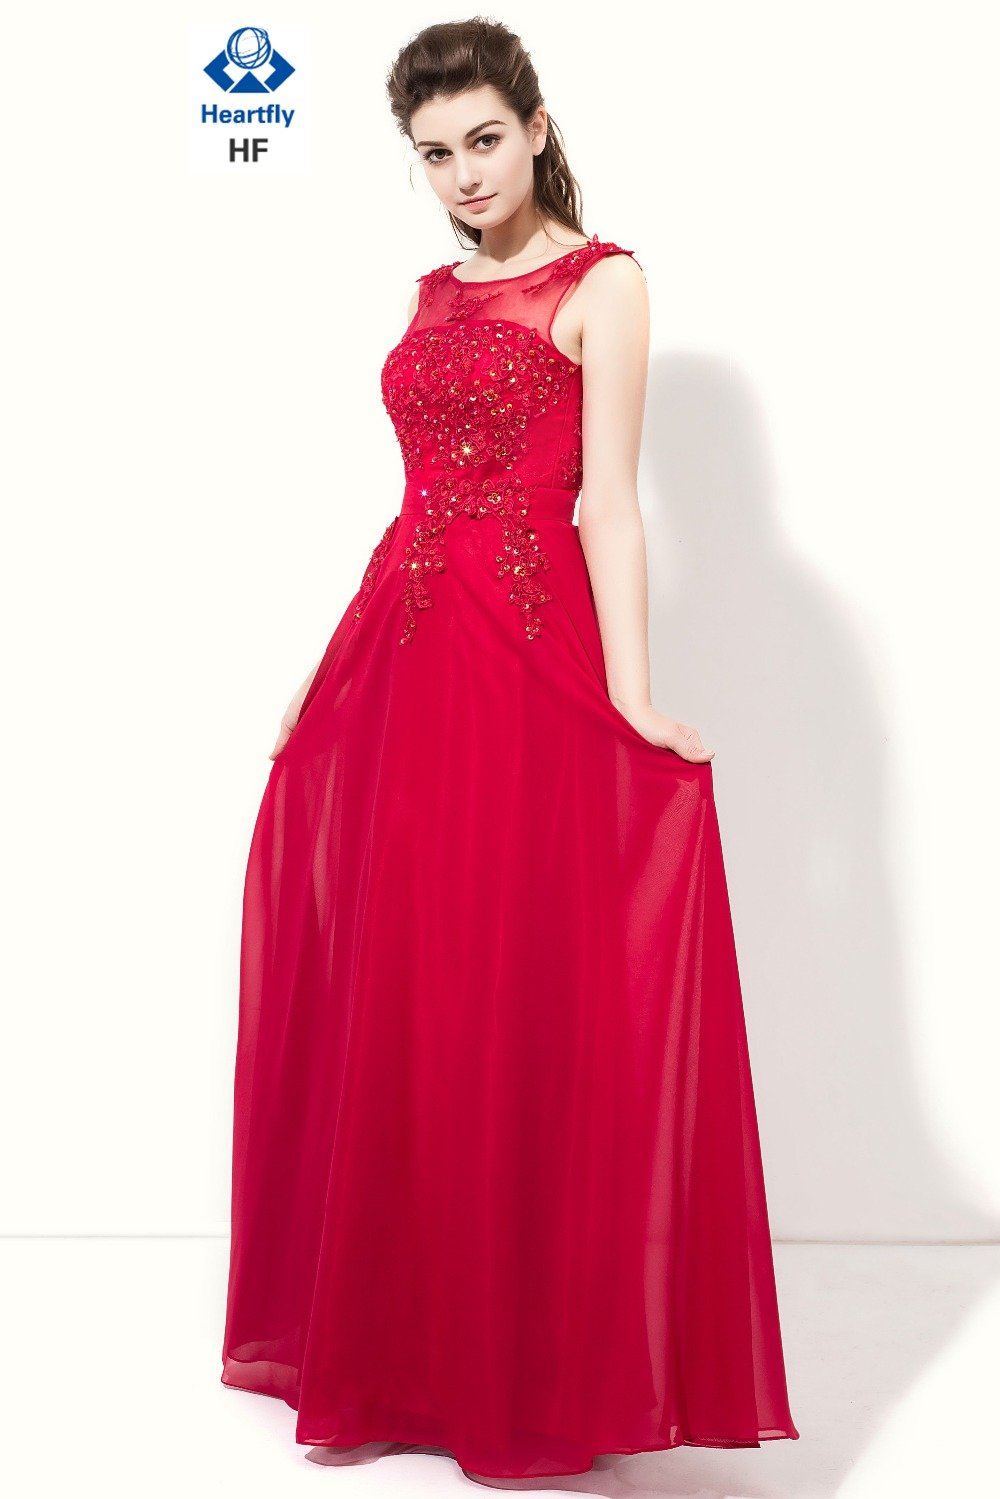 Heartfly sheer neck applique long bridesmaid dresses 2017 fashion heartfly sheer neck applique long bridesmaid dresses 2017 fashion chiffon vestido madrinha formal party gown fast delivery in bridesmaid dresses from ombrellifo Images